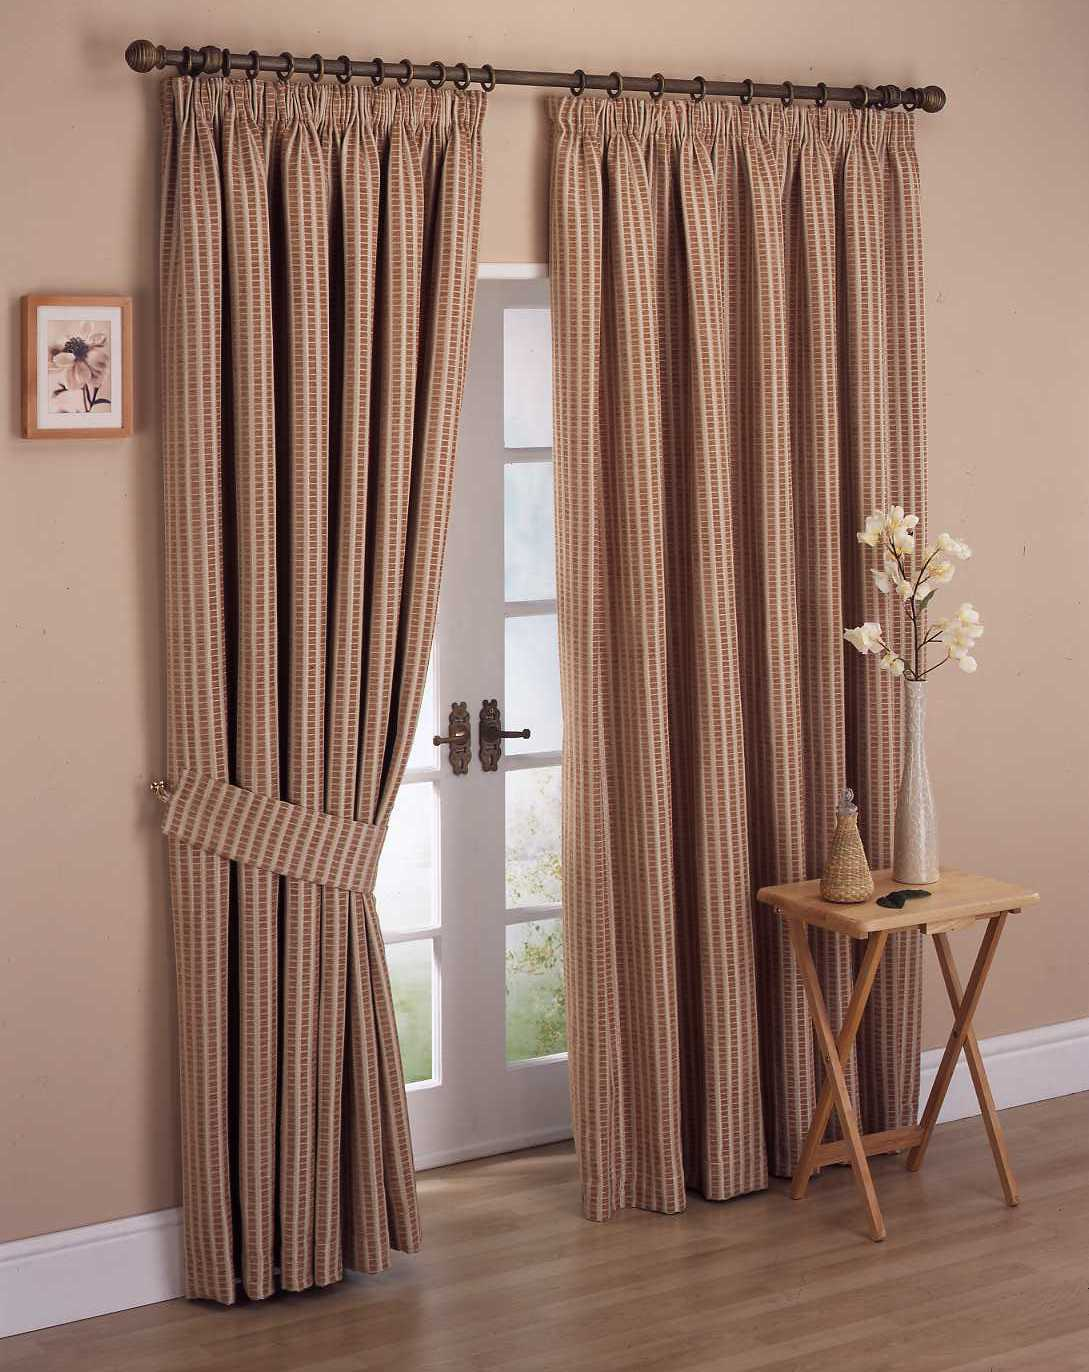 Modern curtains designs bedroom - Classic Curtains Designs Catalog Bedroom Window Patterns Colors Decorate Home